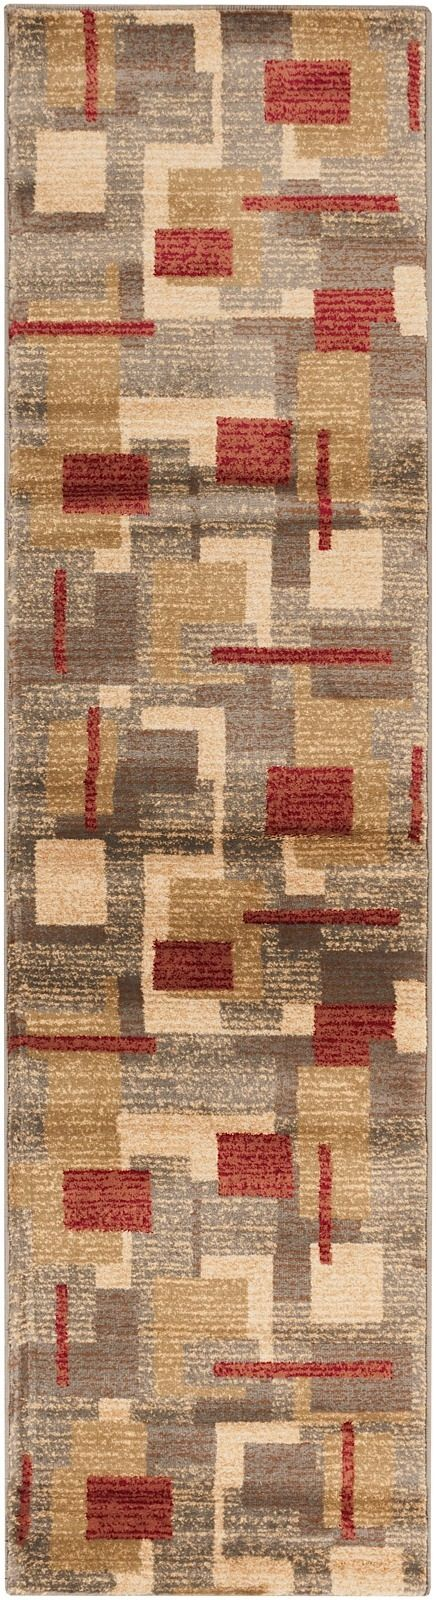 surya riley contemporary area rug collection